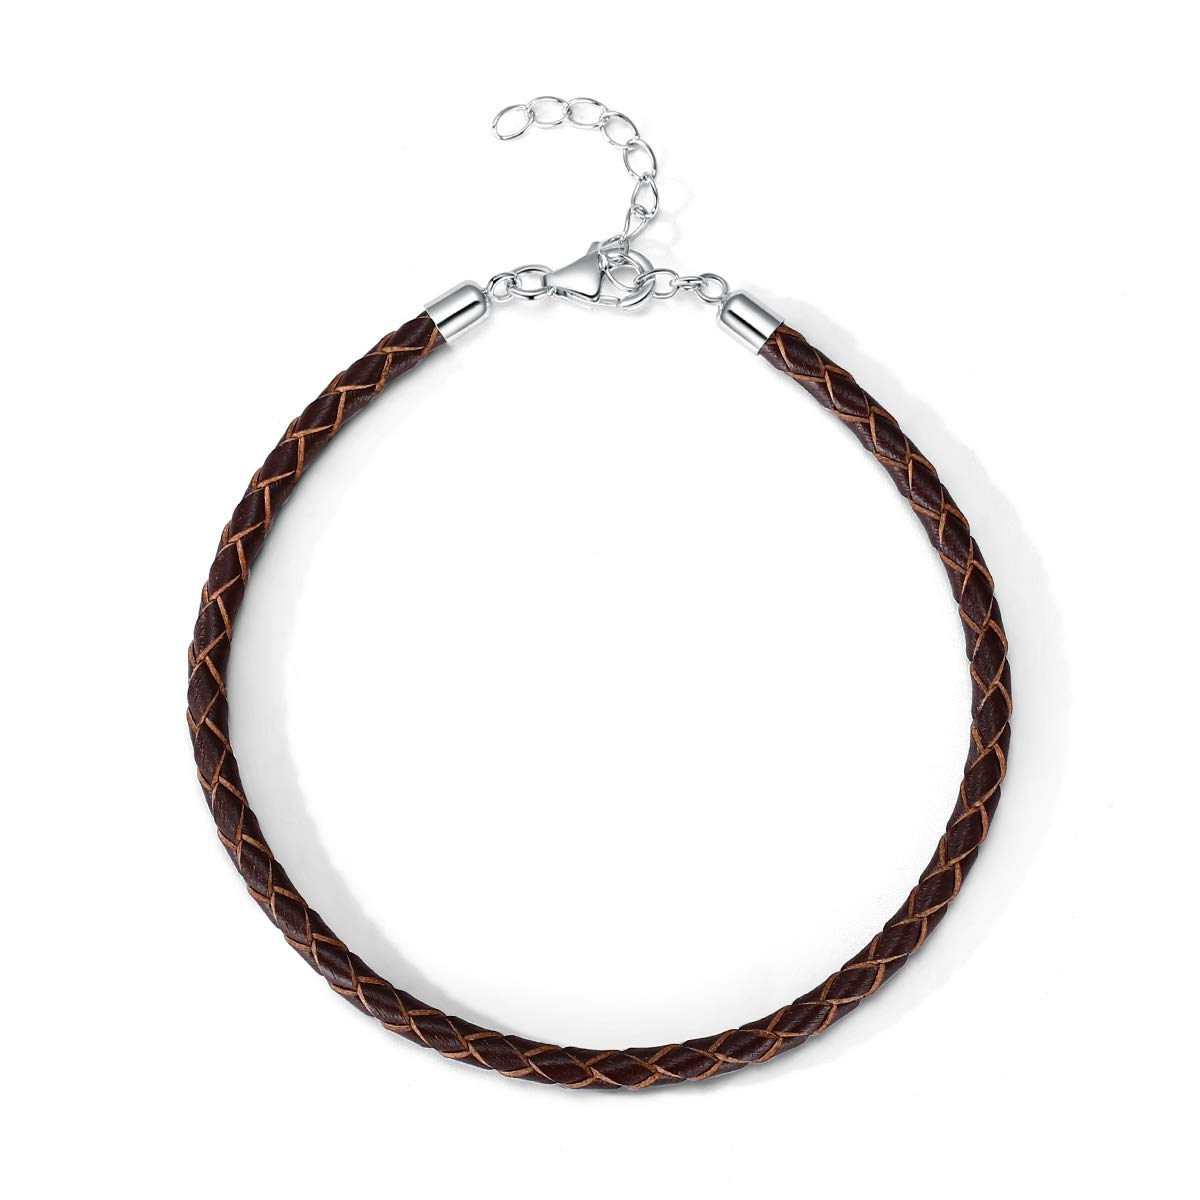 T400 Black Brown Red Pink White Bangle Charm Braided Bracelet Genuine Cowhide Leather Wristband for Unisex Women Men Beads Gift